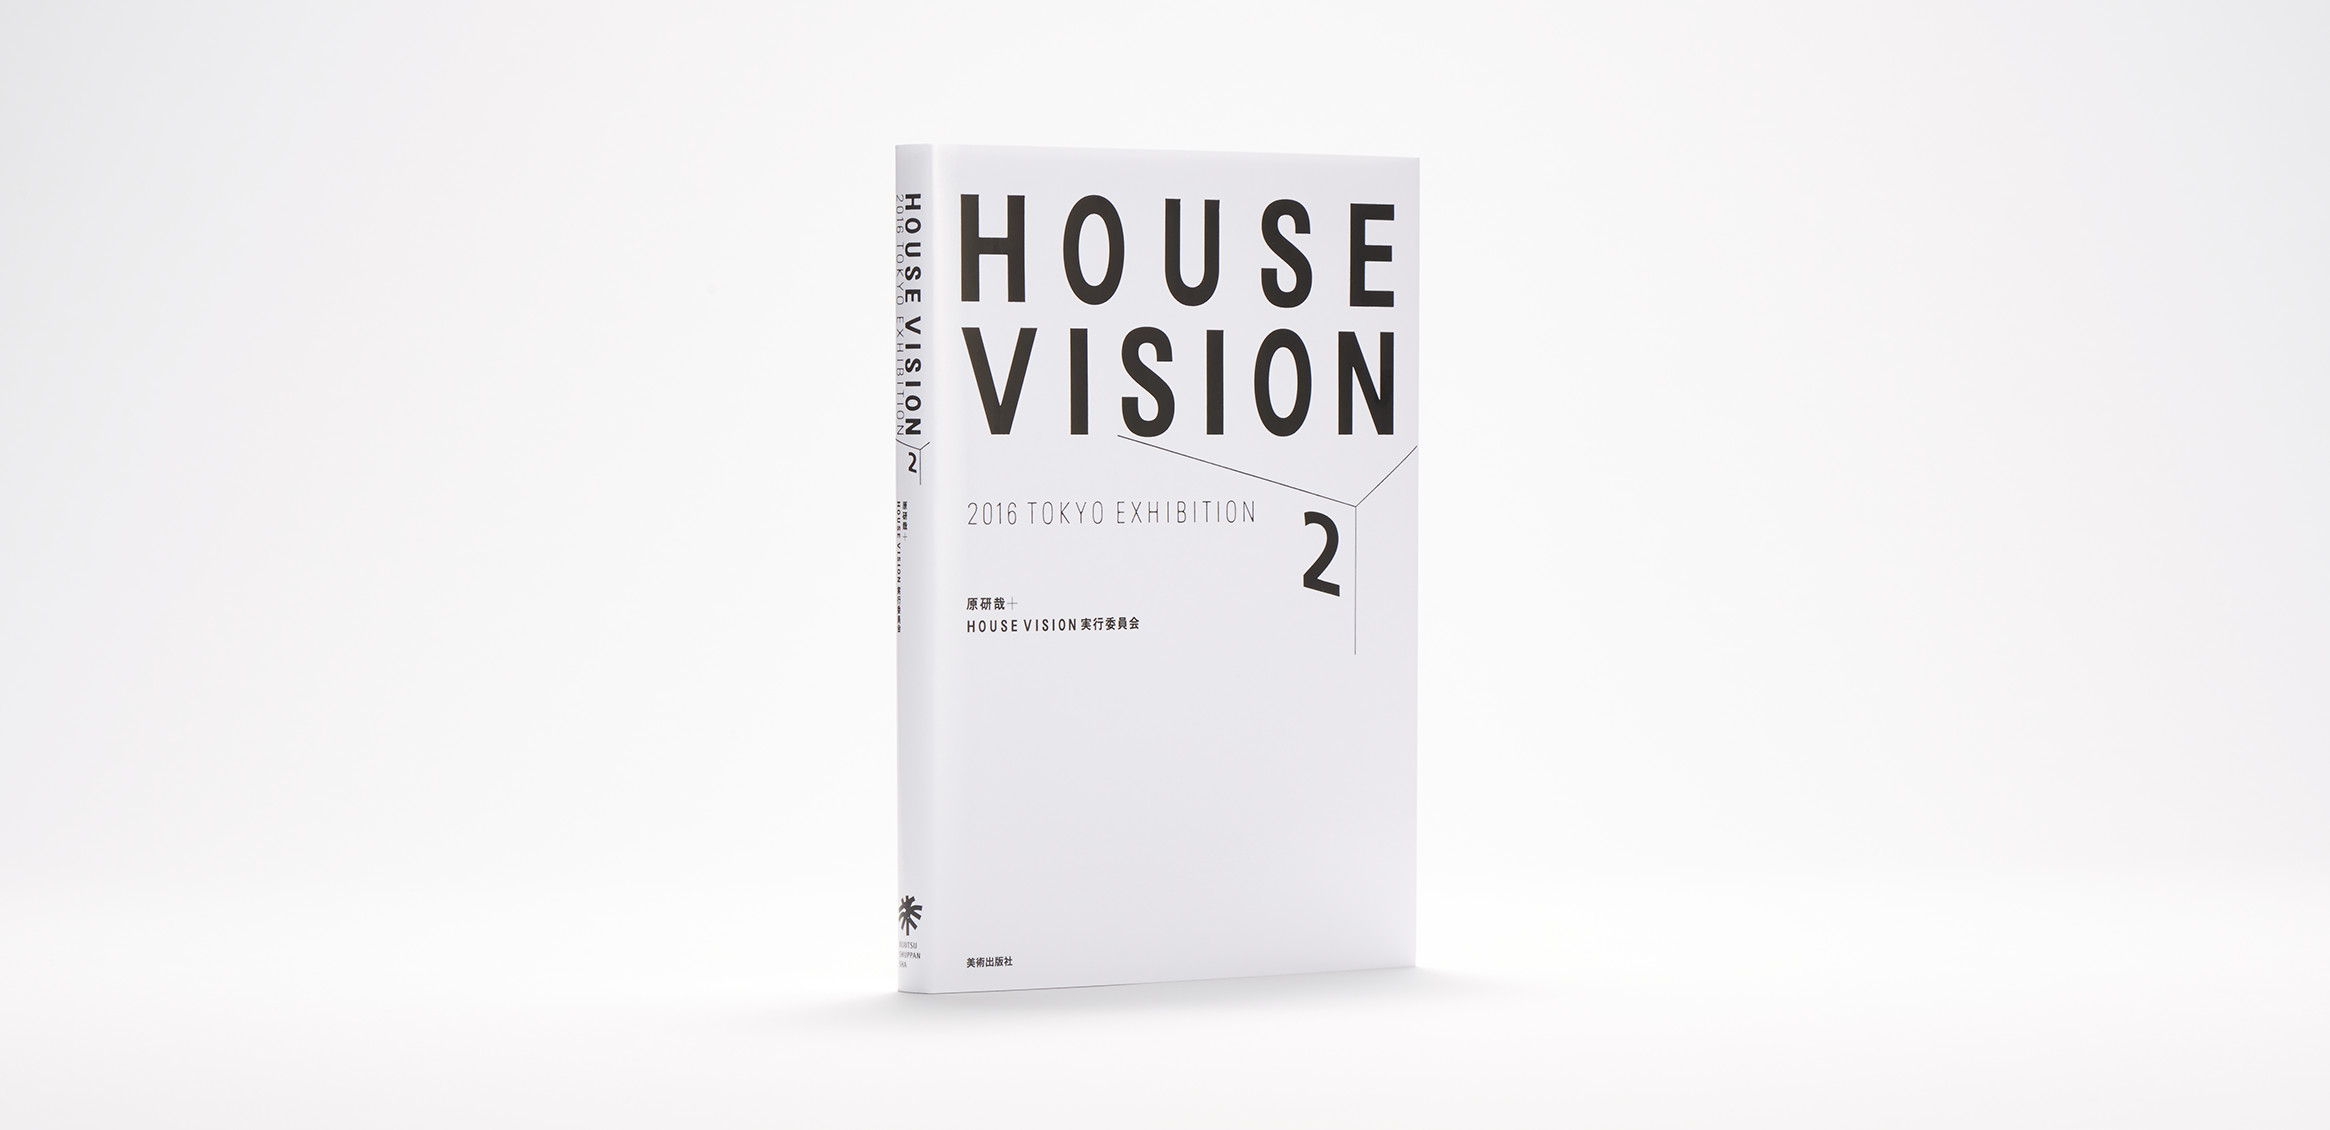 HOUSE VISION 2 2016 TOKYO EXHIBITION 書籍0枚目